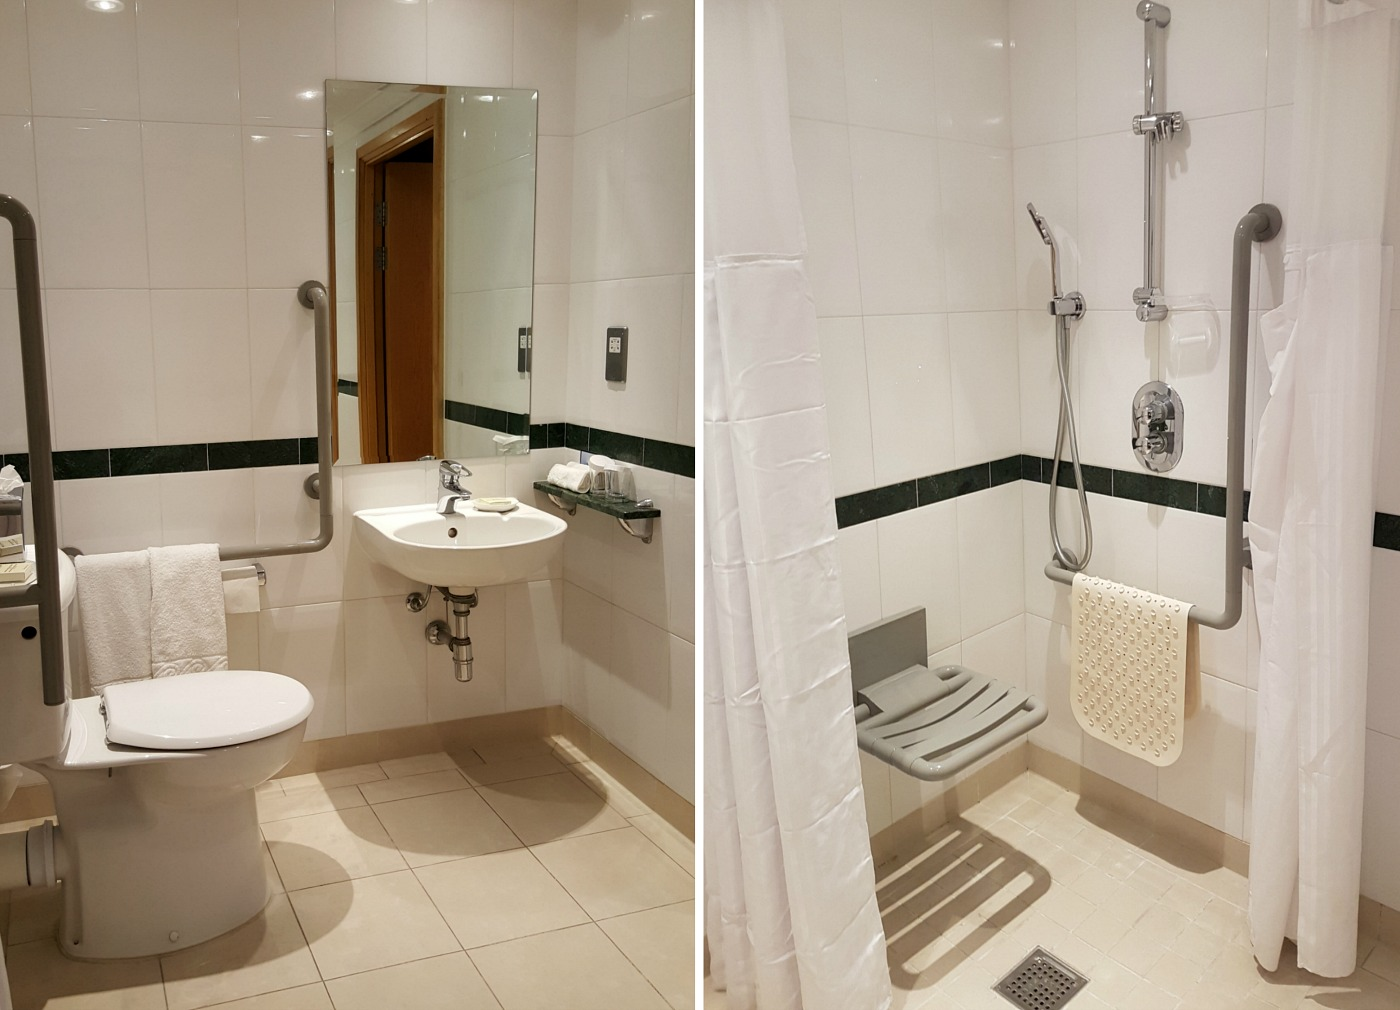 hilton-newcastle-gateshead-hotel-accessible-bathroom-roll-in-shower